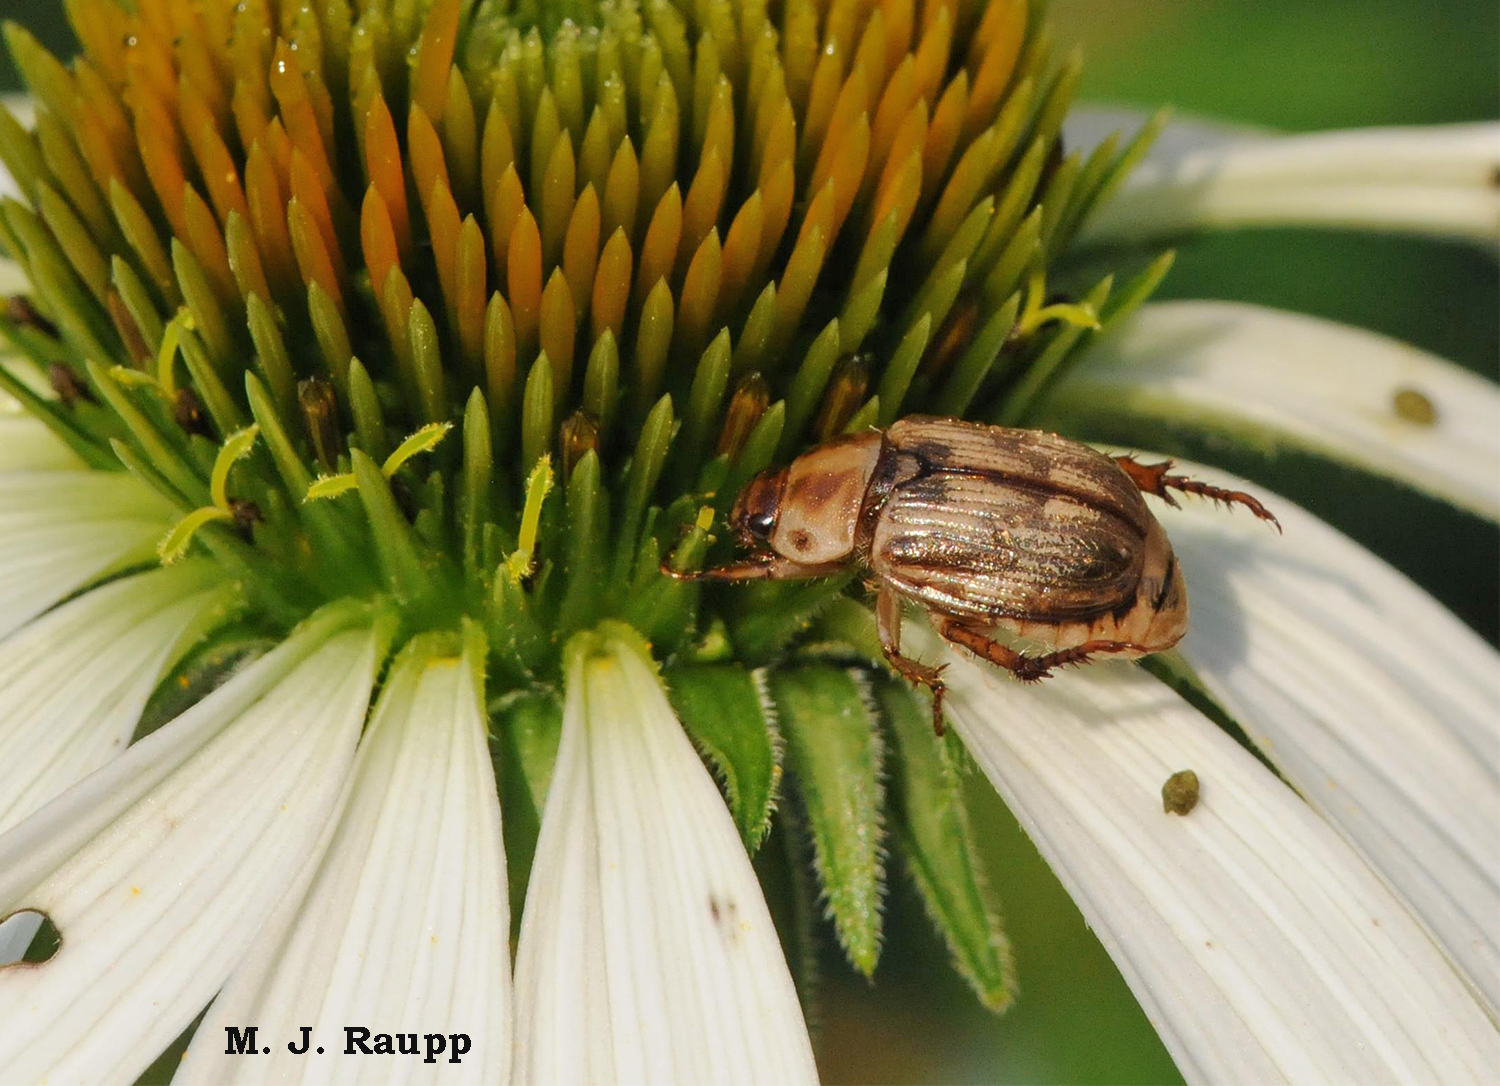 Despoiling petals of my coneflowers is just another meal for the Oriental beetle.